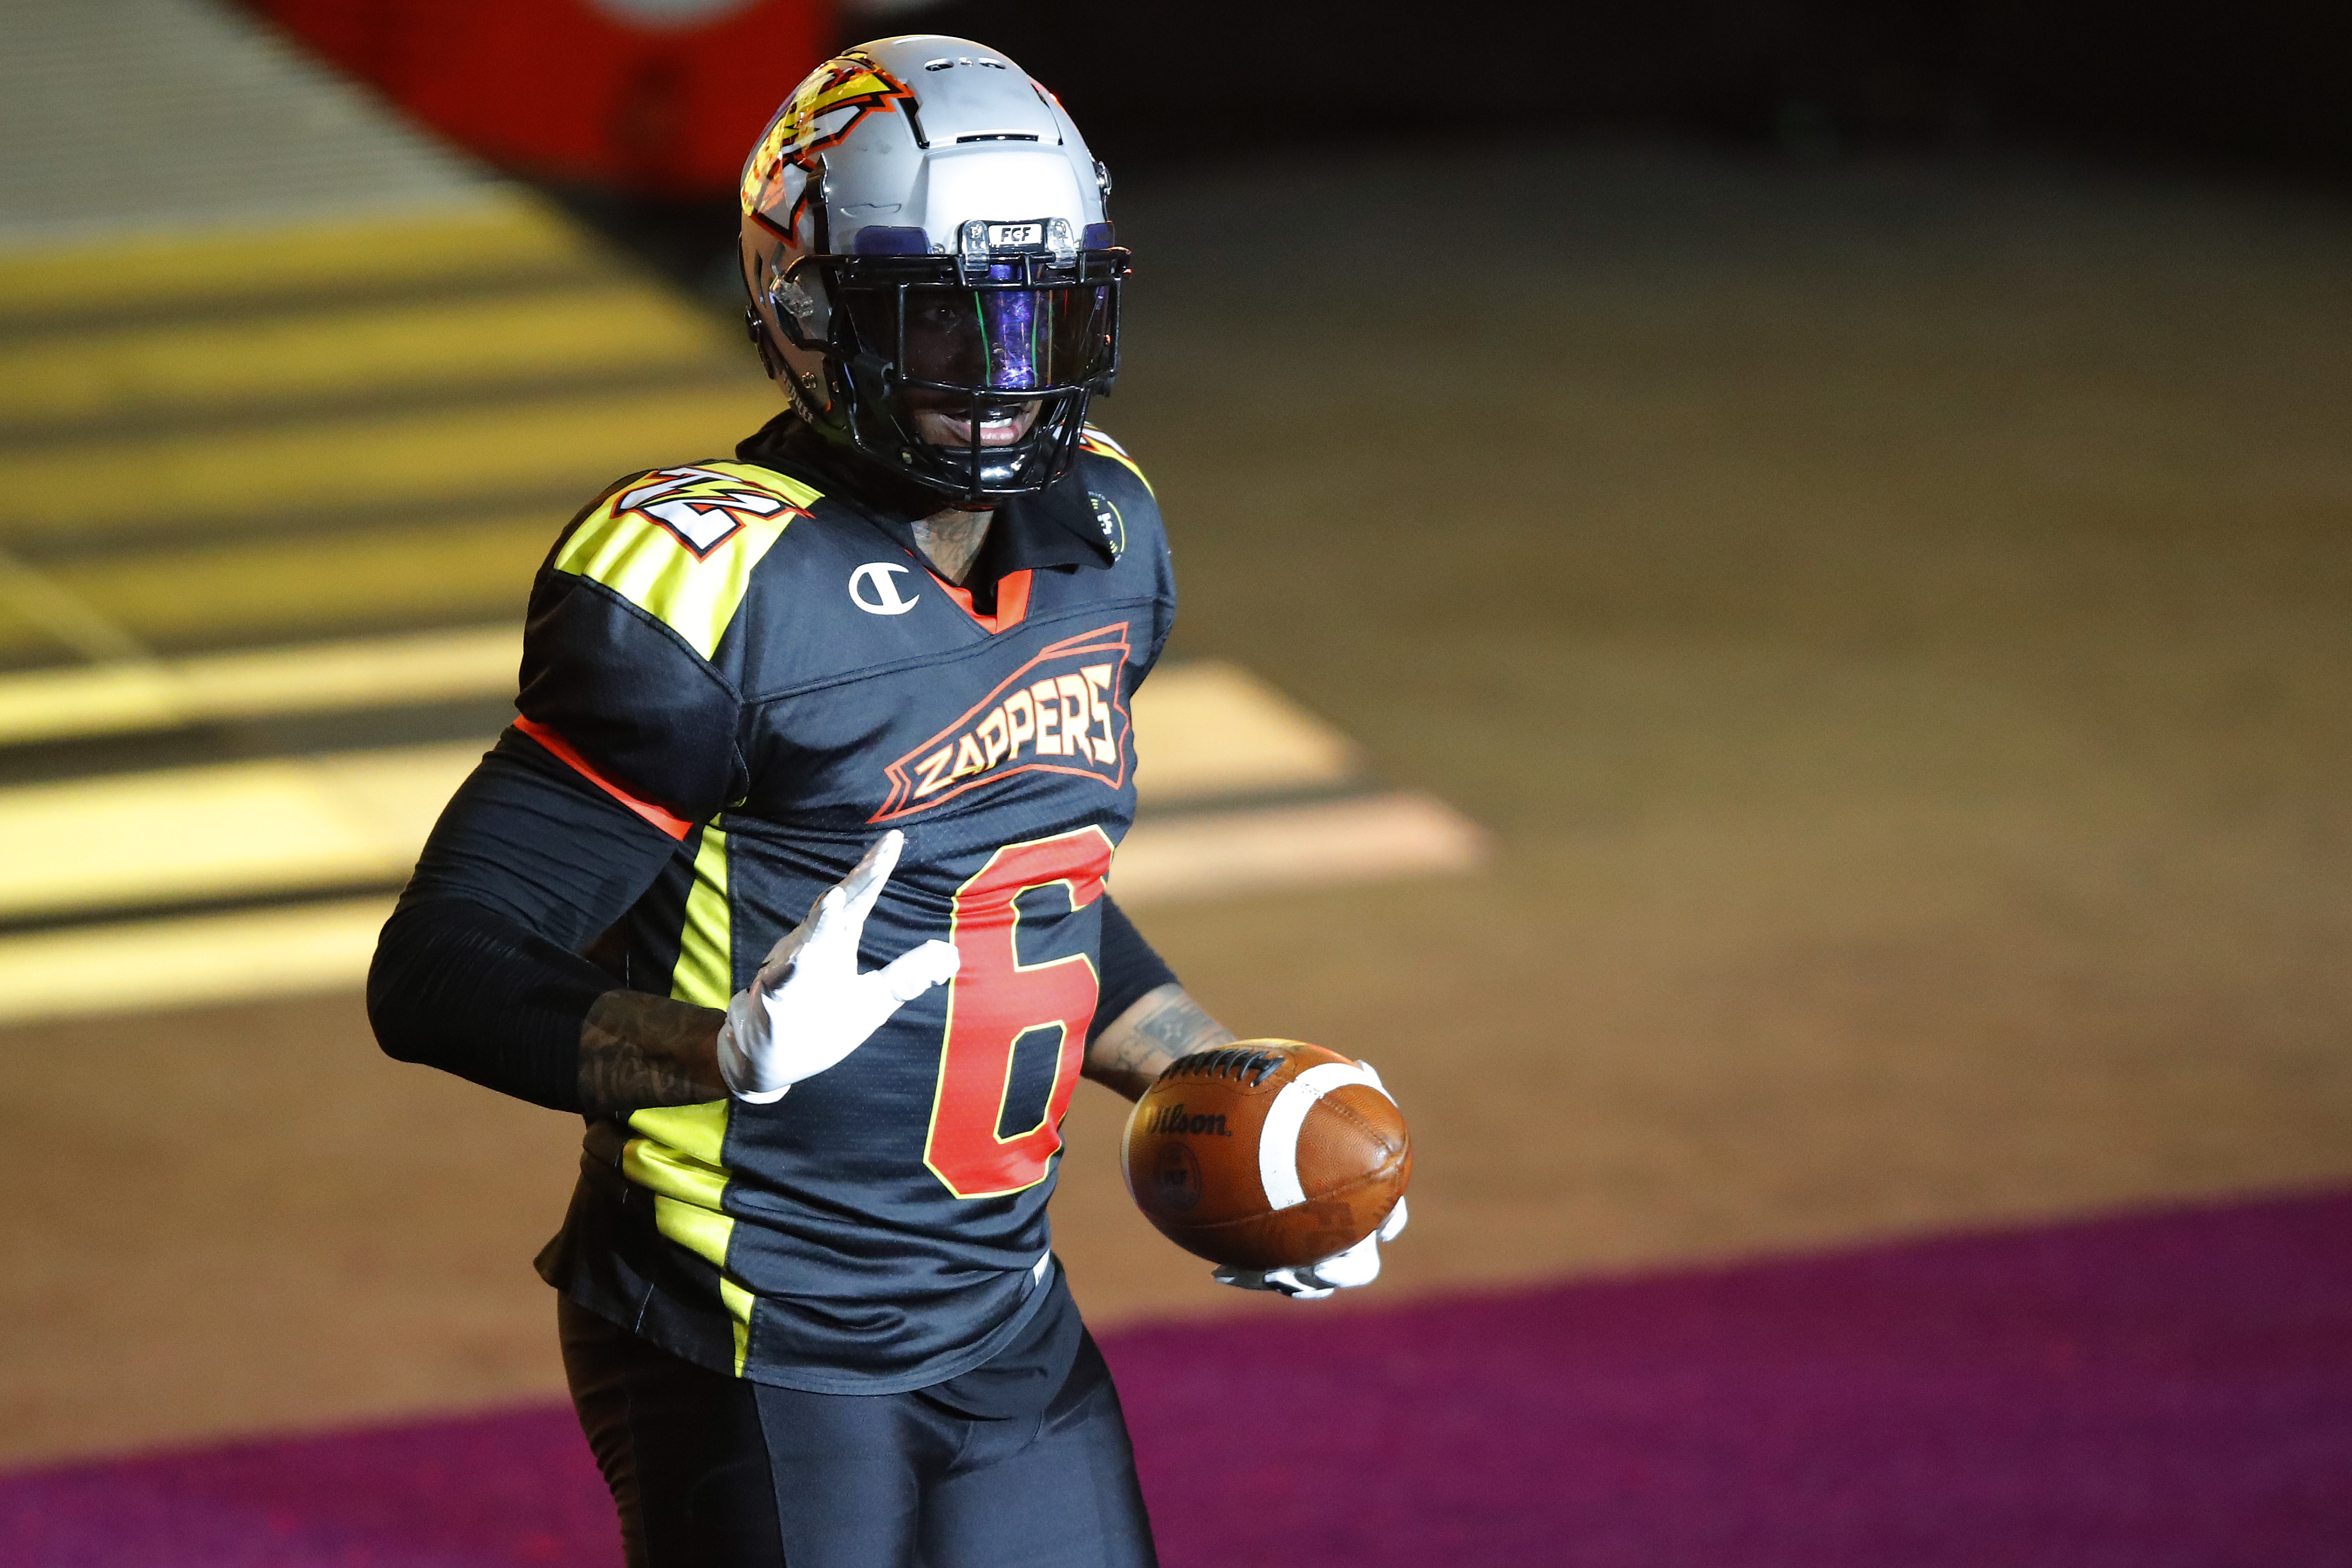 Josh Gordon #6 of the Zappers celebrates a touchdown against the Wild Aces during the second half of a Fan Controlled Football game at Infinite Energy Arena on March 13, 2021 in Duluth, Georgia.